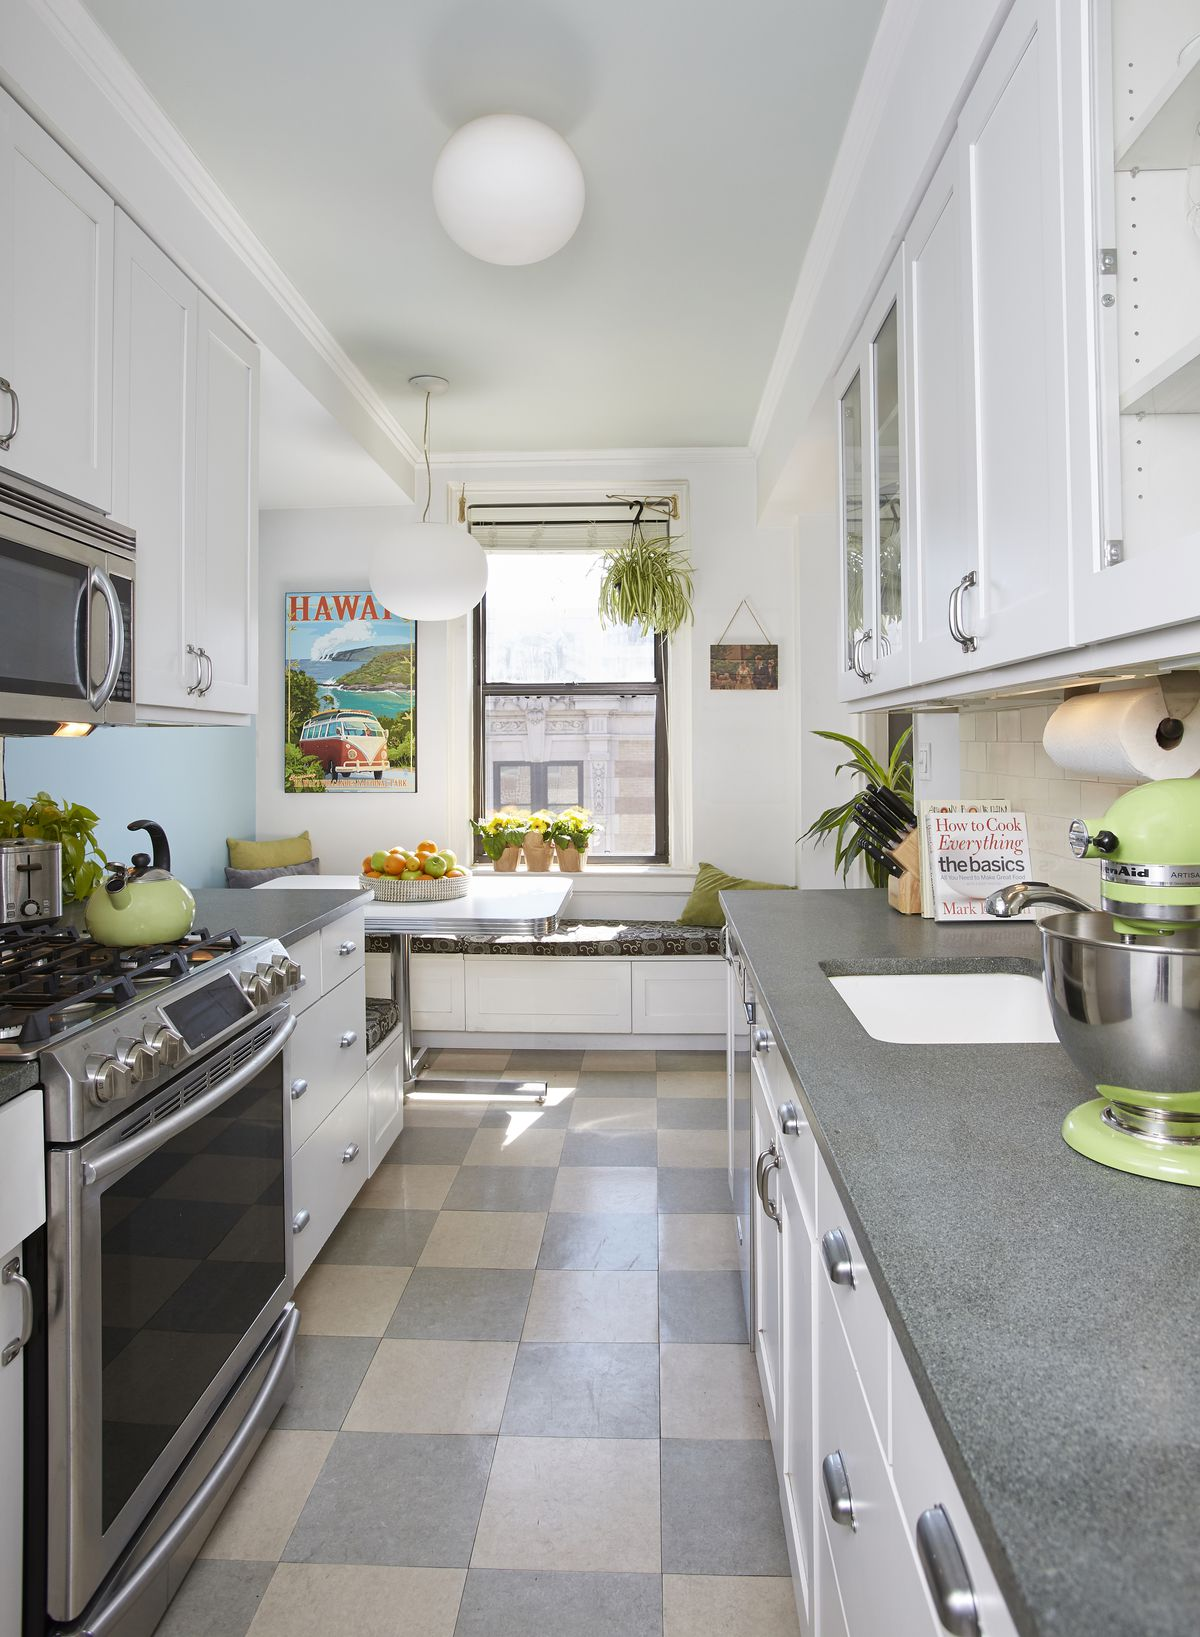 A kitchen with white cabinetry and checkered tiles.